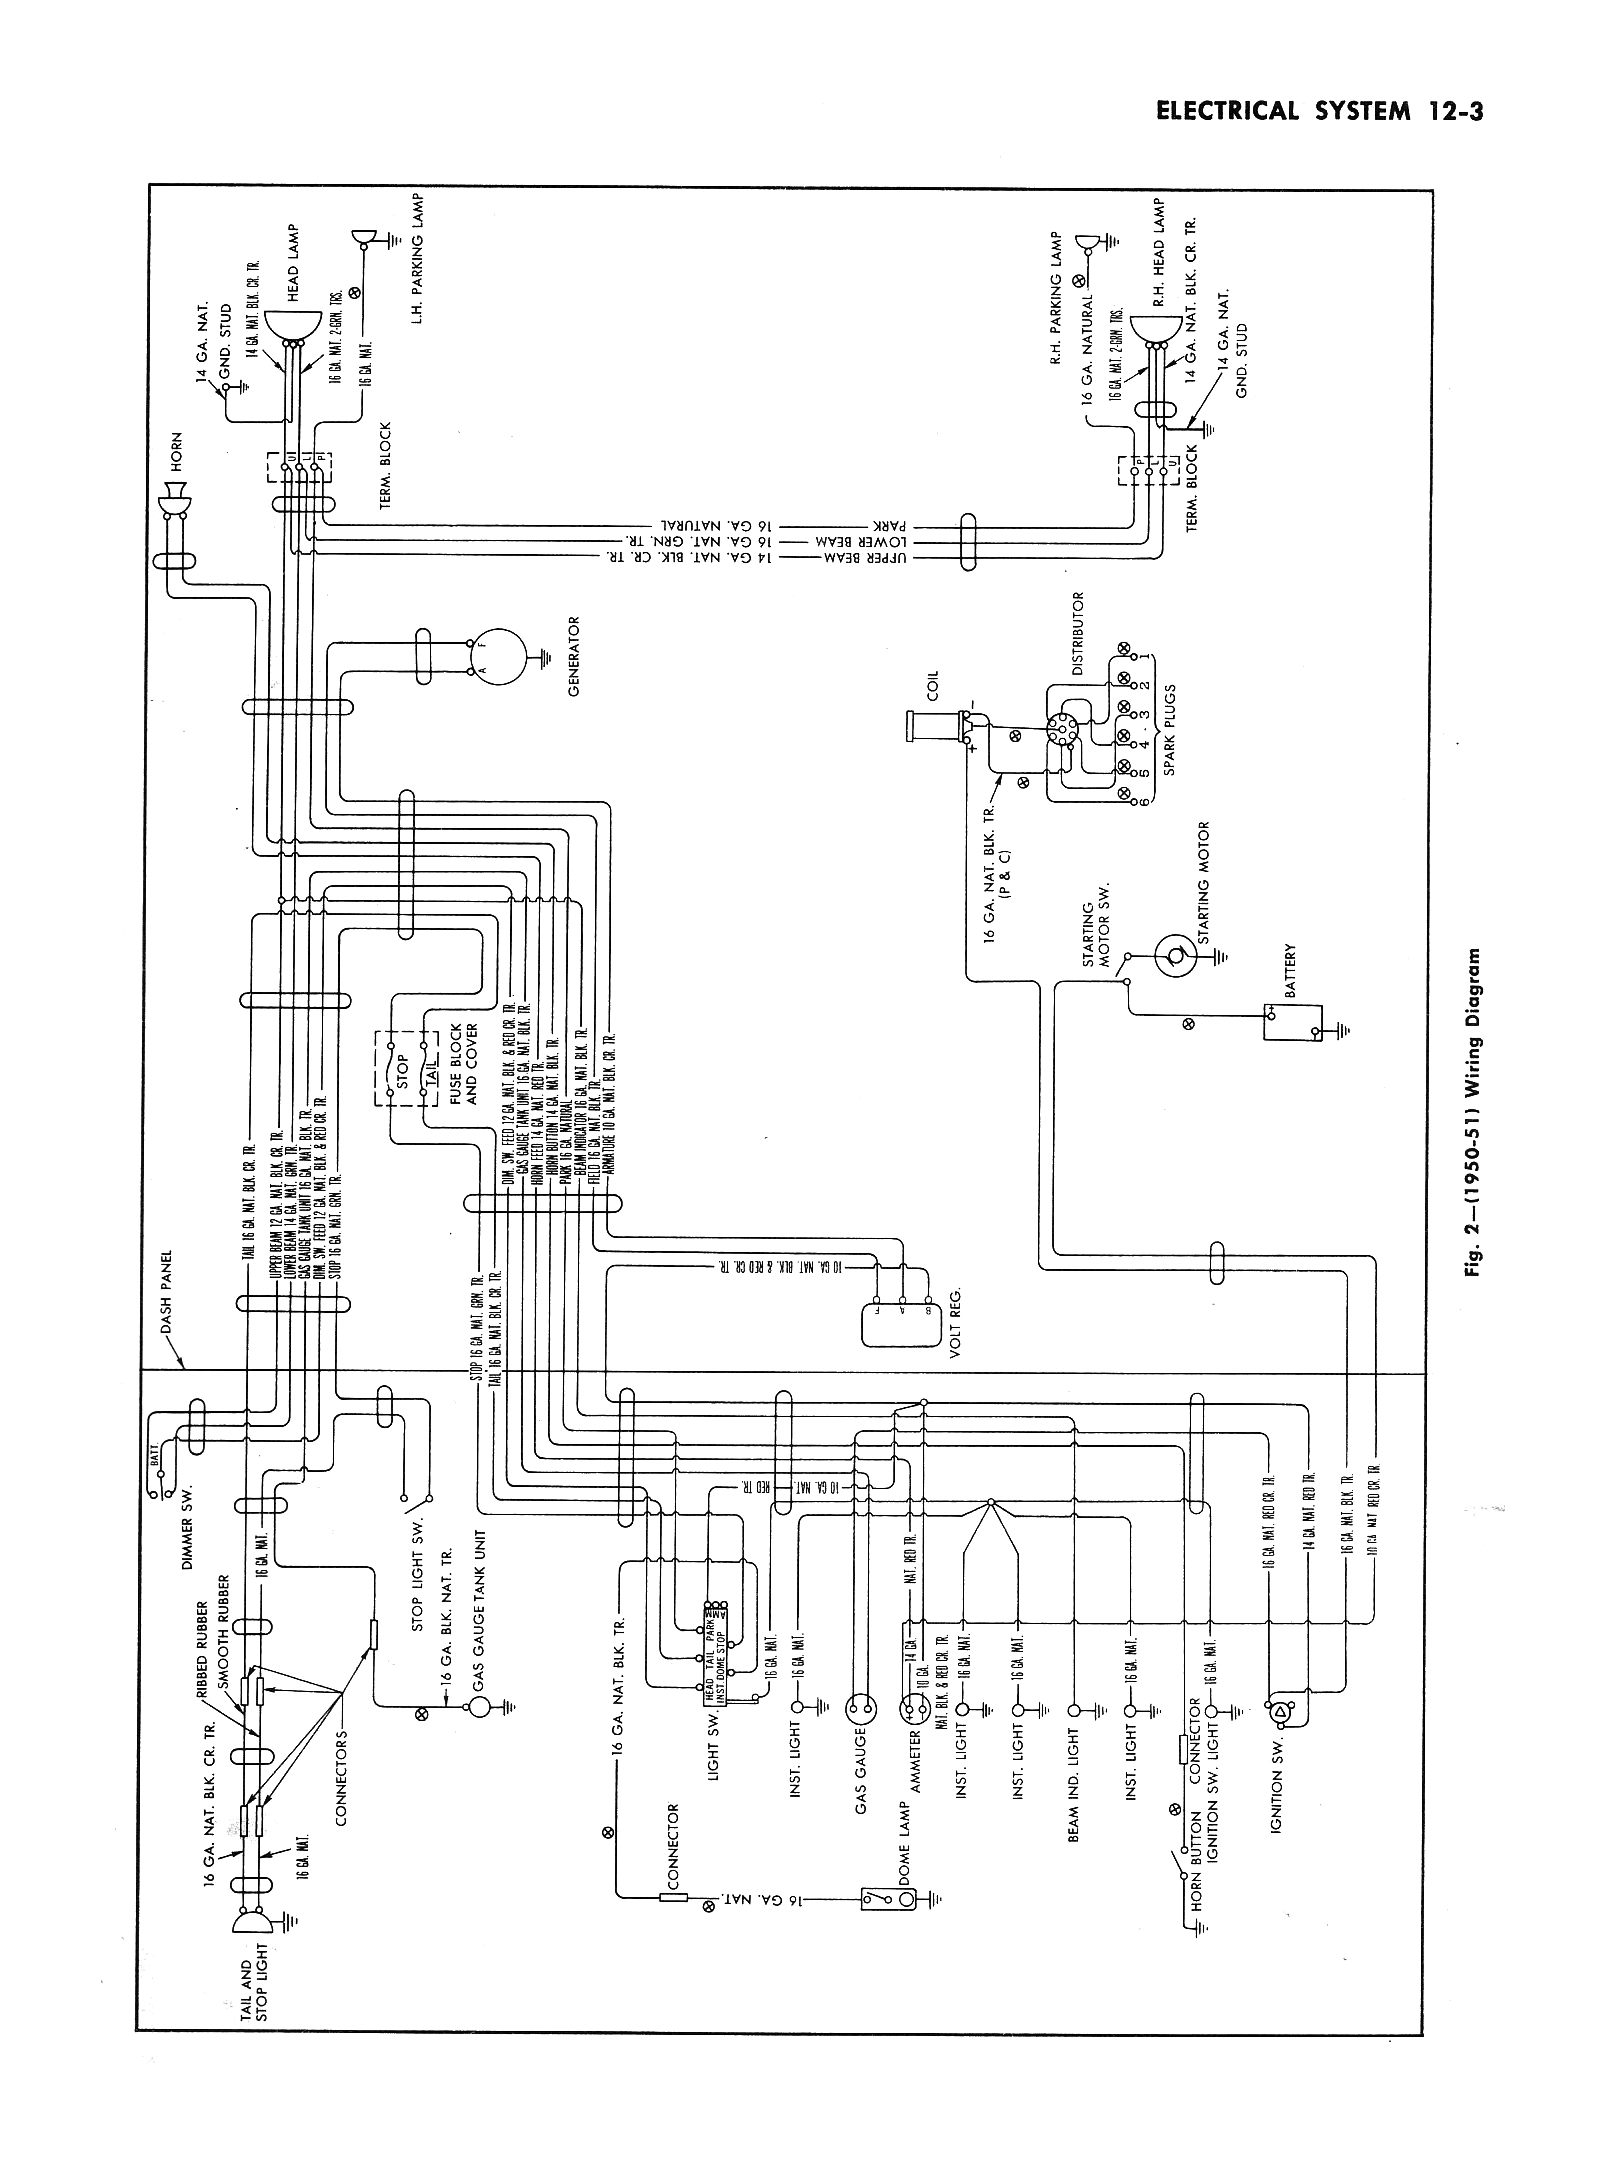 hight resolution of 1950 ford light switch diagram wiring diagrams wni 1950 ford headlight switch diagram wiring diagram data